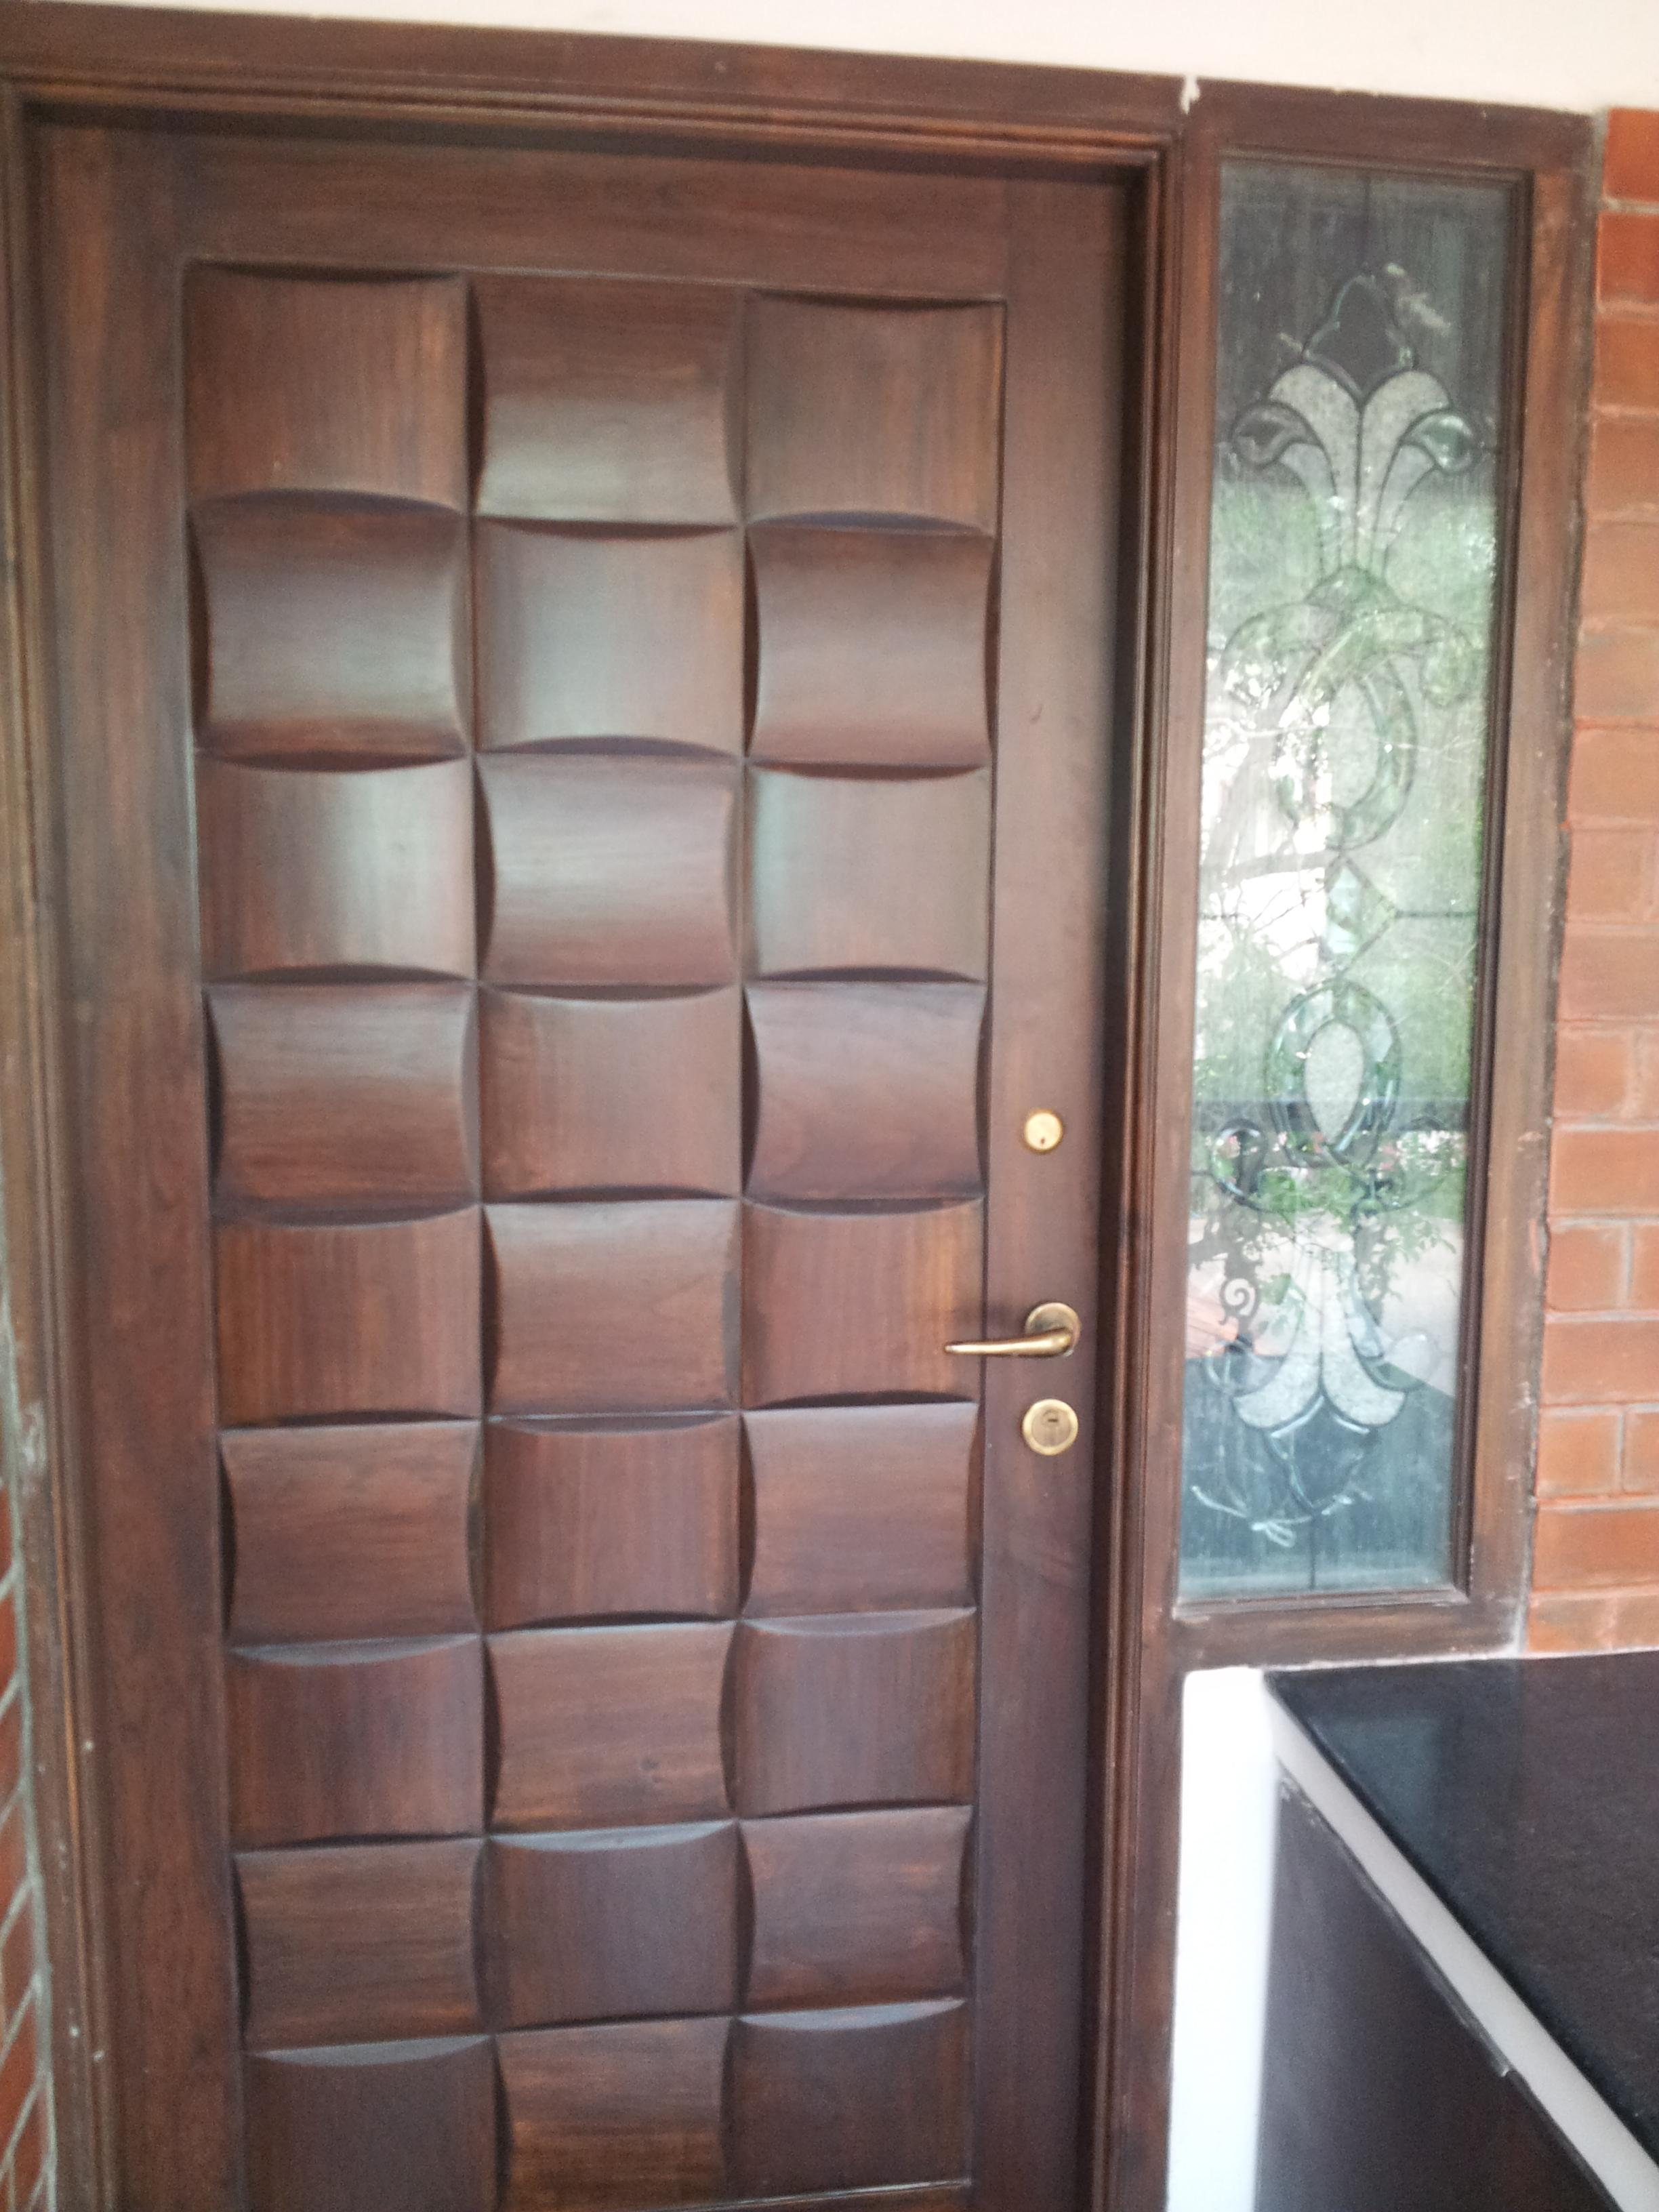 Main door design in wood very popular in 2013 gharexpert for Latest wooden door designs 2016